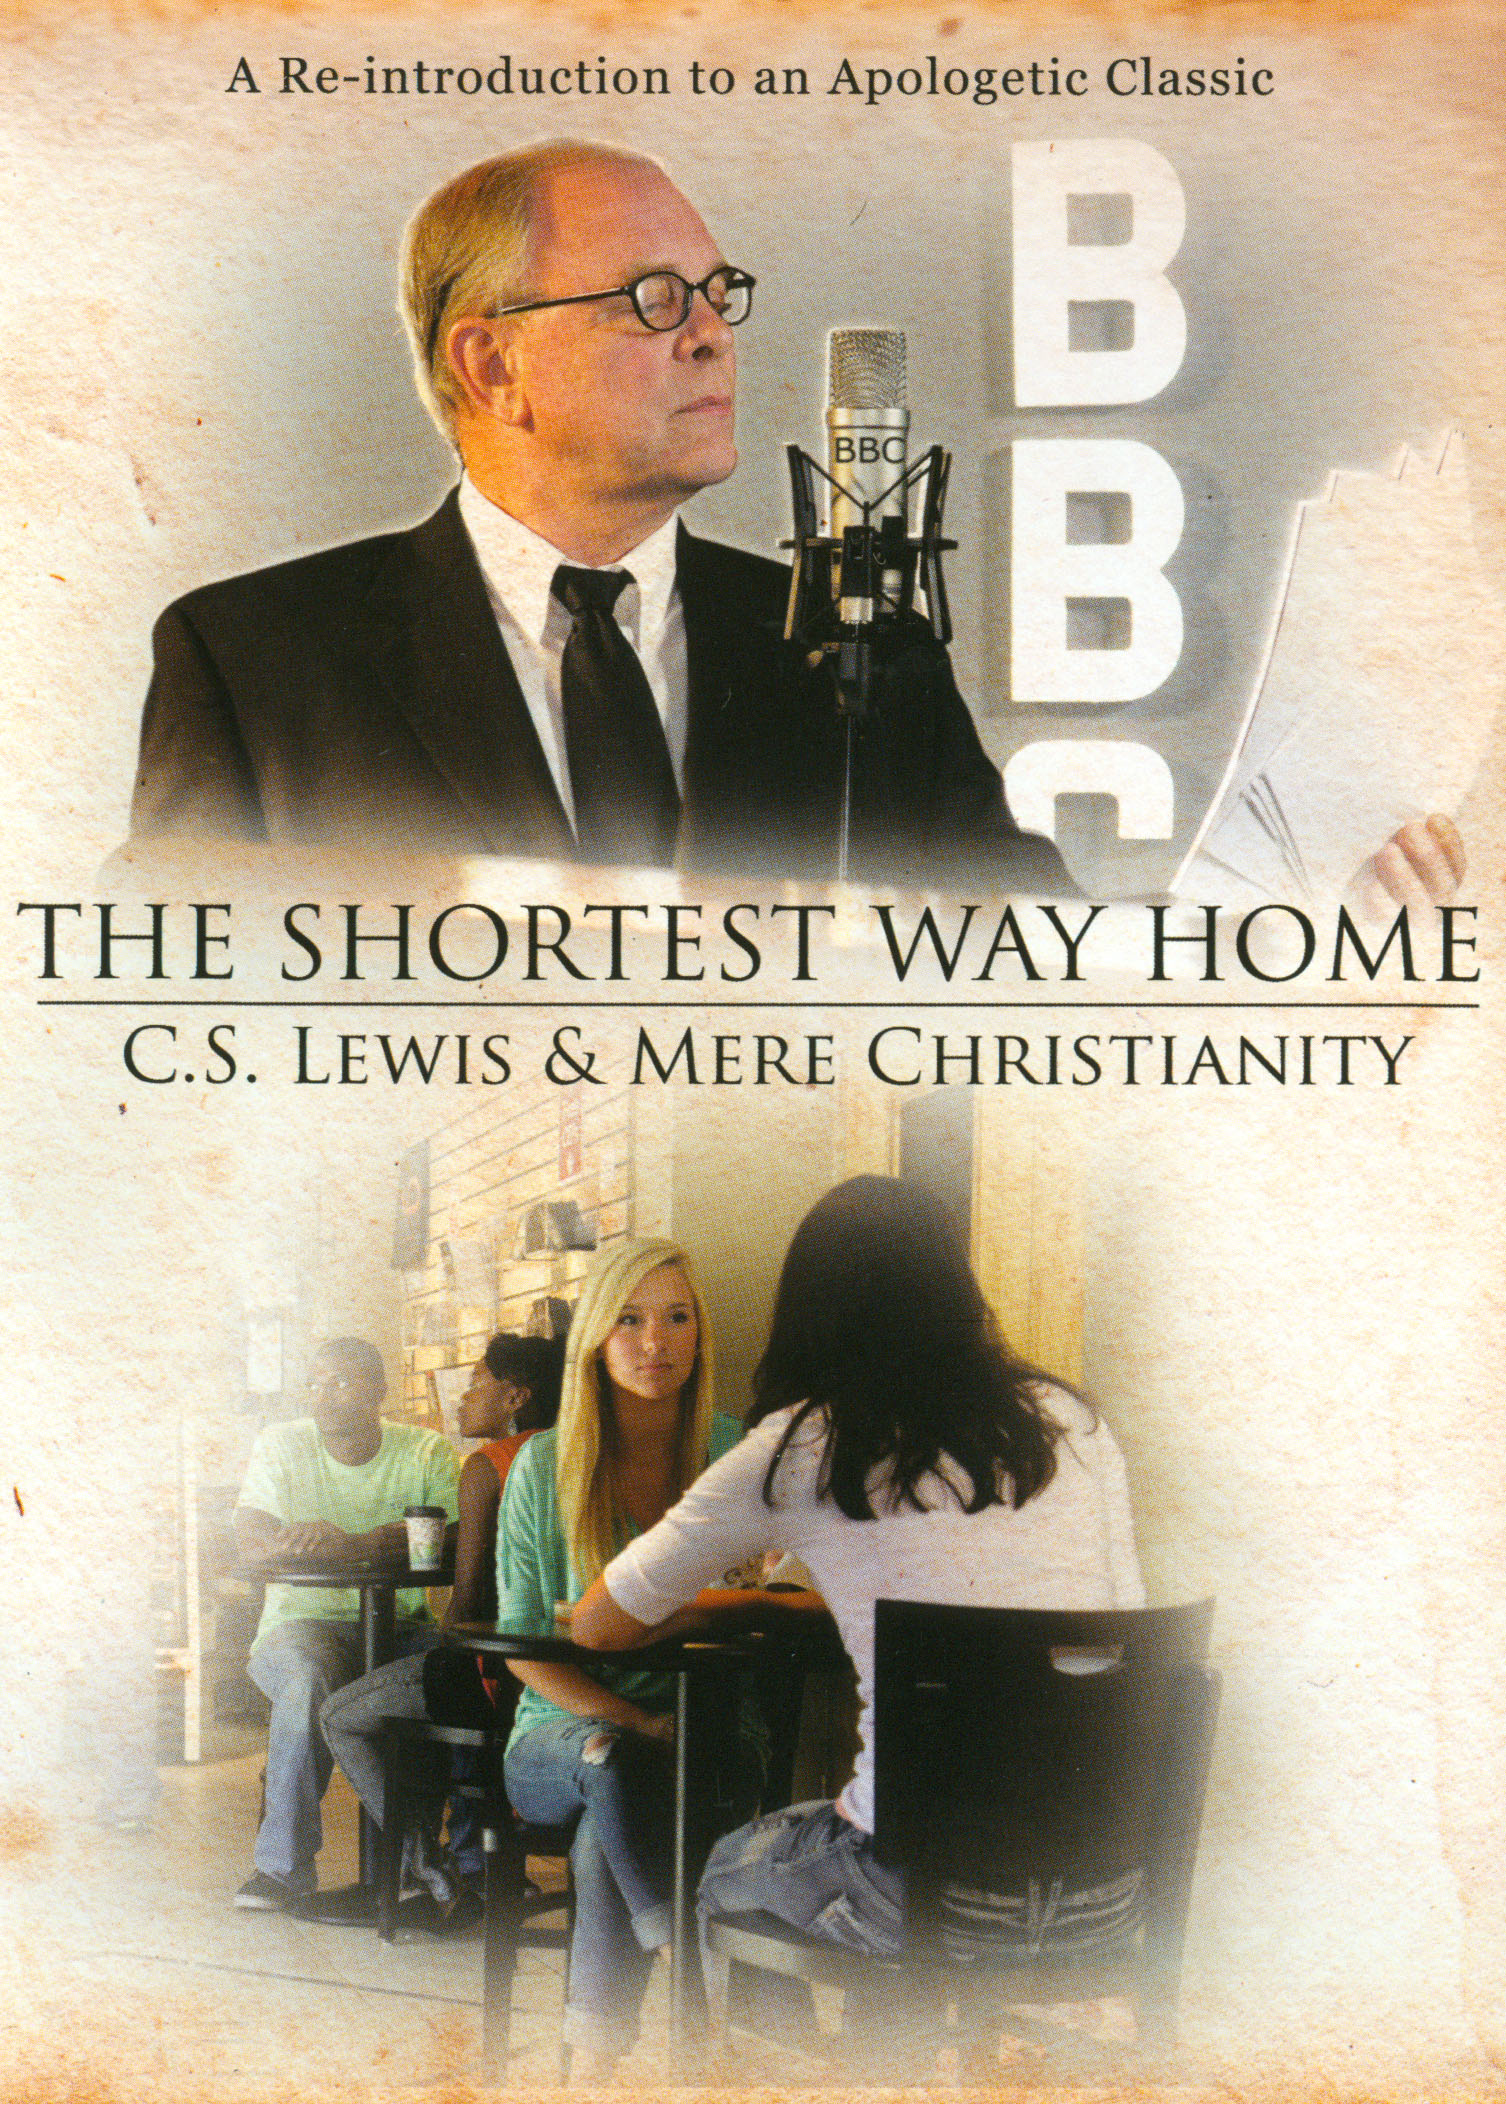 The Shortest Way Home: C.S. Lewis and Mere Christianity